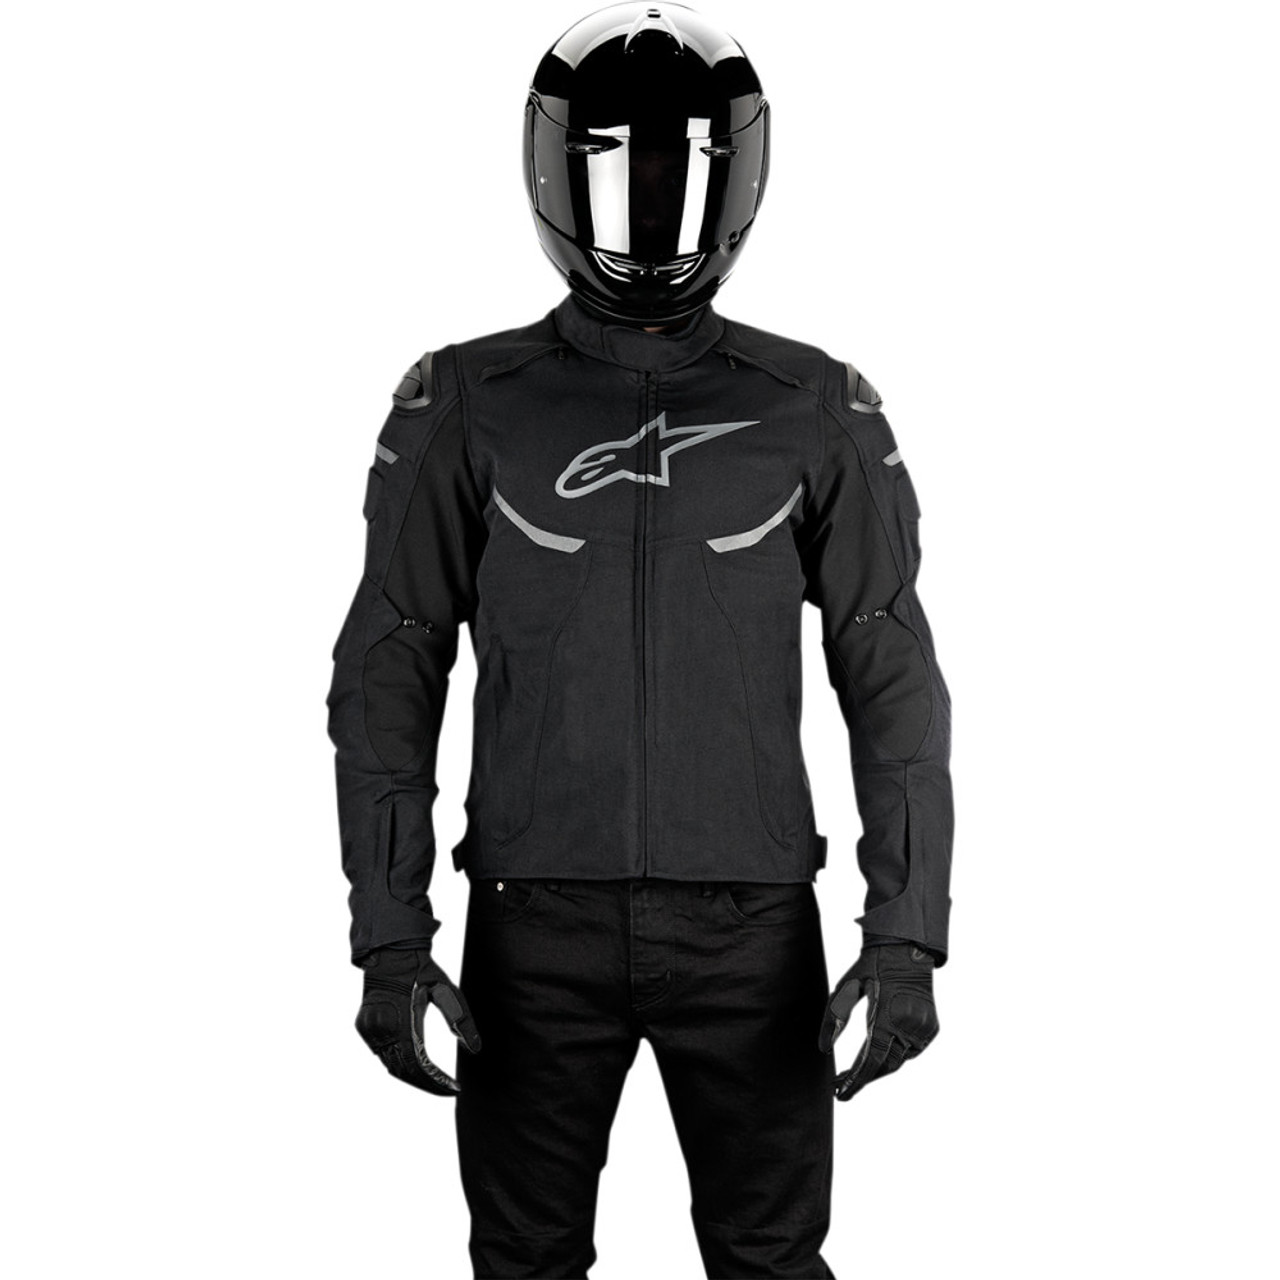 Alpinestars Motorcycle Jacket >> Alpinestars Enforce Drystar Motorcycle Jacket Black Get Lowered